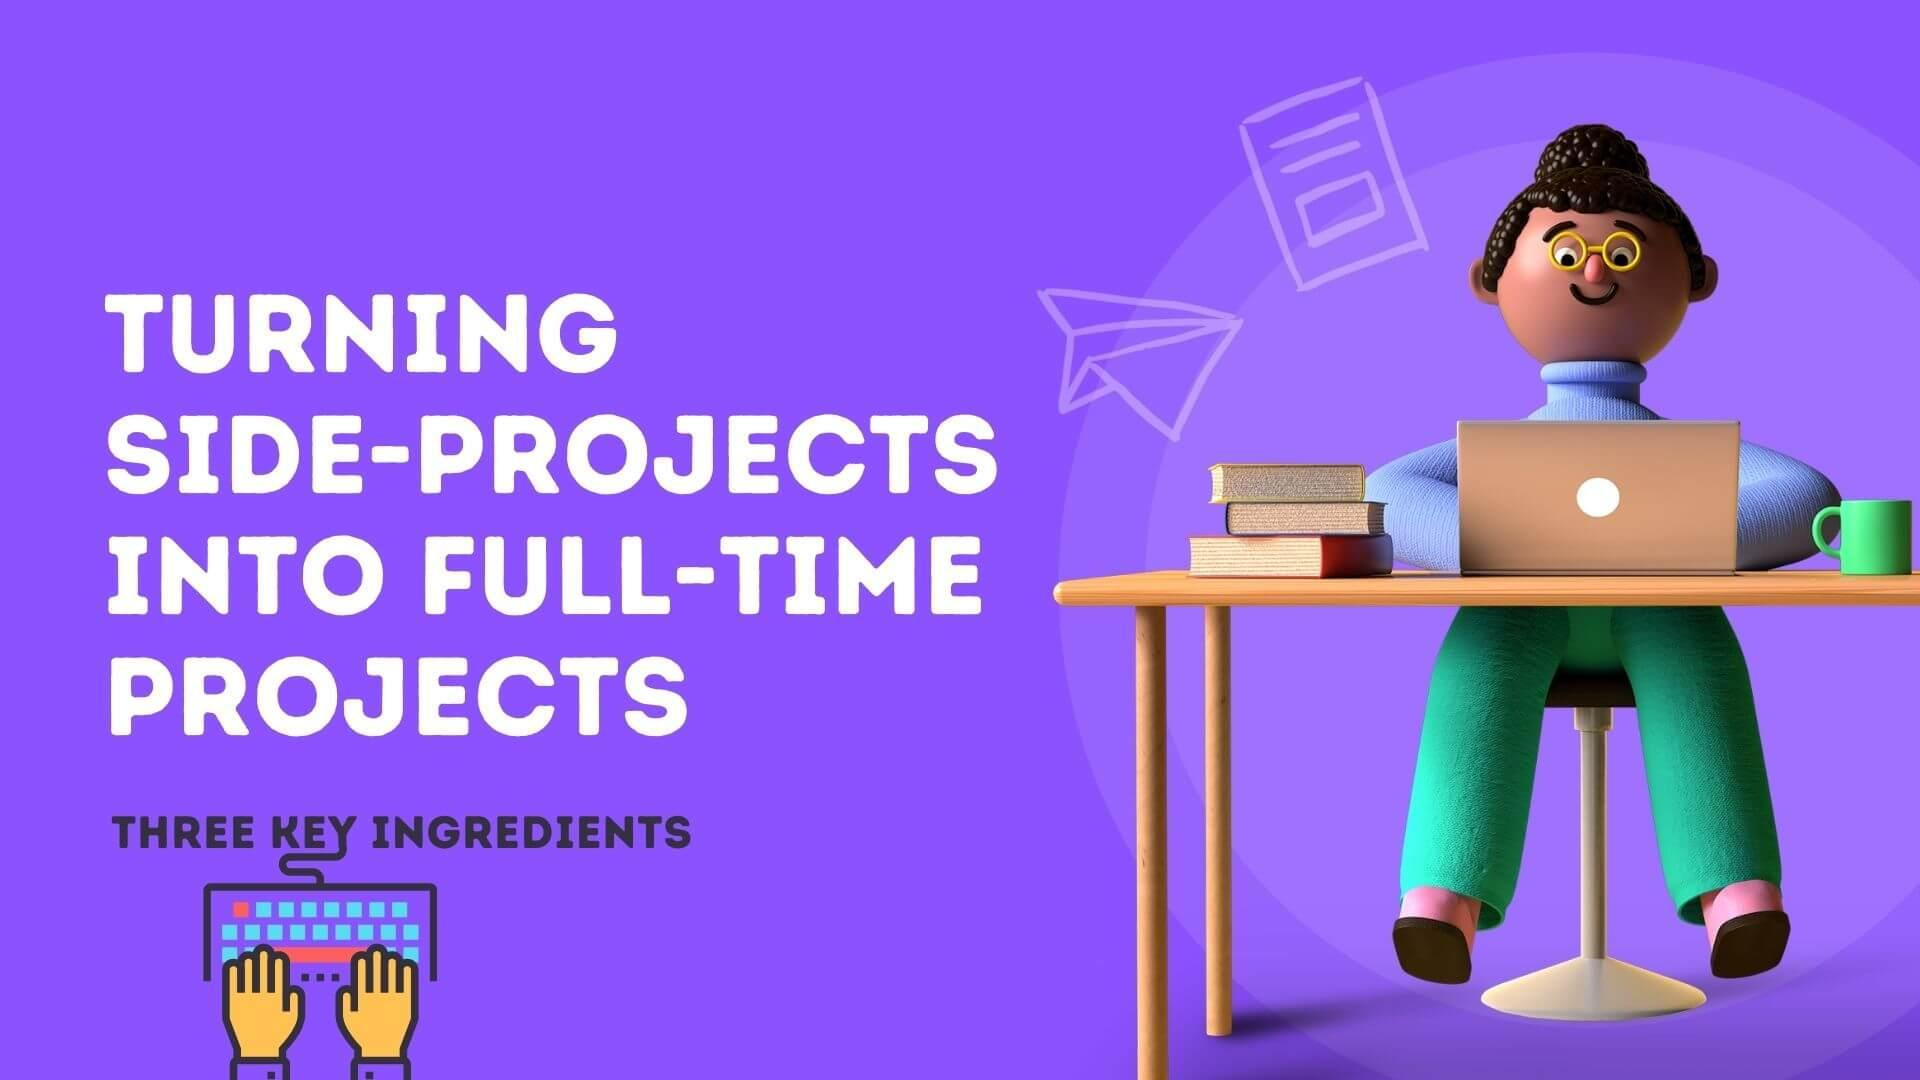 Turning Side-Projects into Full-Time Projects